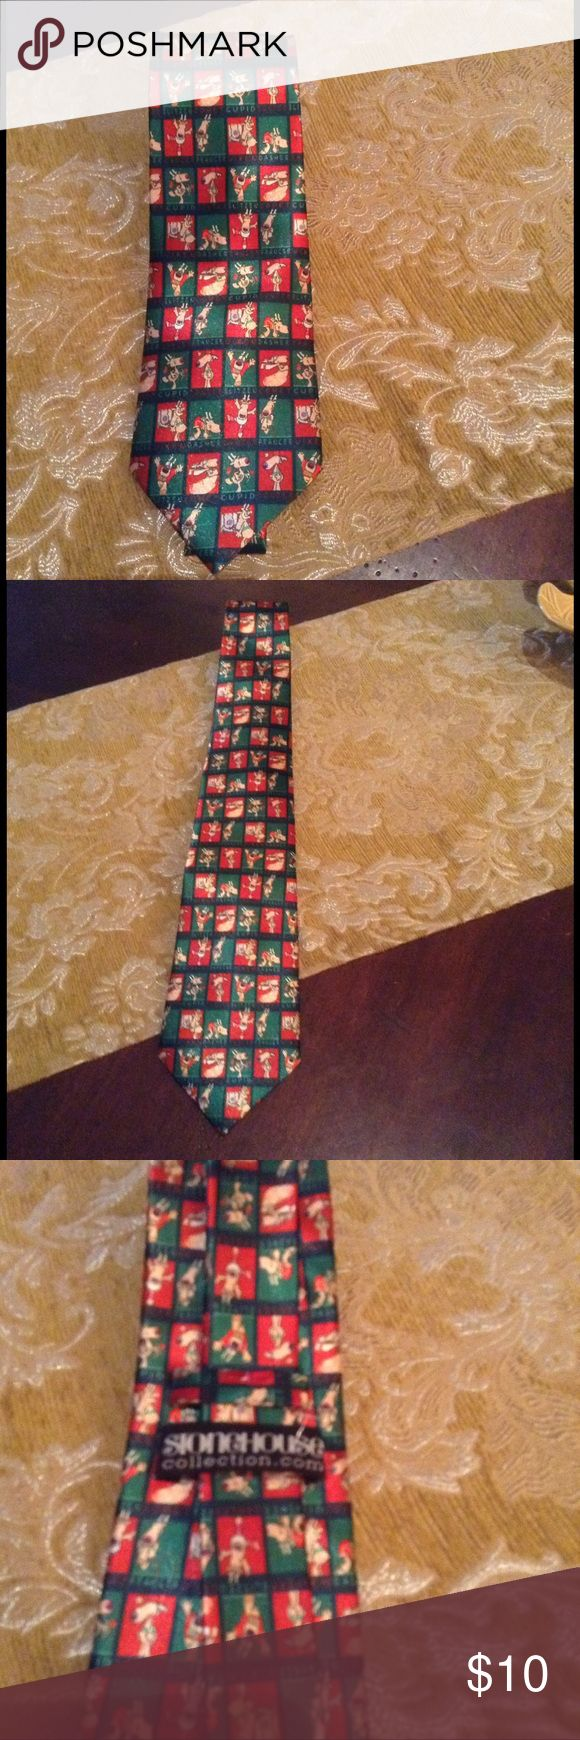 Stonehouse Collection Christmas Tie This green & red background tie has all of the Christmas reindeers on it with their names.  It has other colors of tan, white, pink, purple, and black.  The tie bottom width is 3.5 inches & the length is 58 inches.  100% Polyester.  Perfect for the holidays!!! Stonehouse Collection Accessories Ties